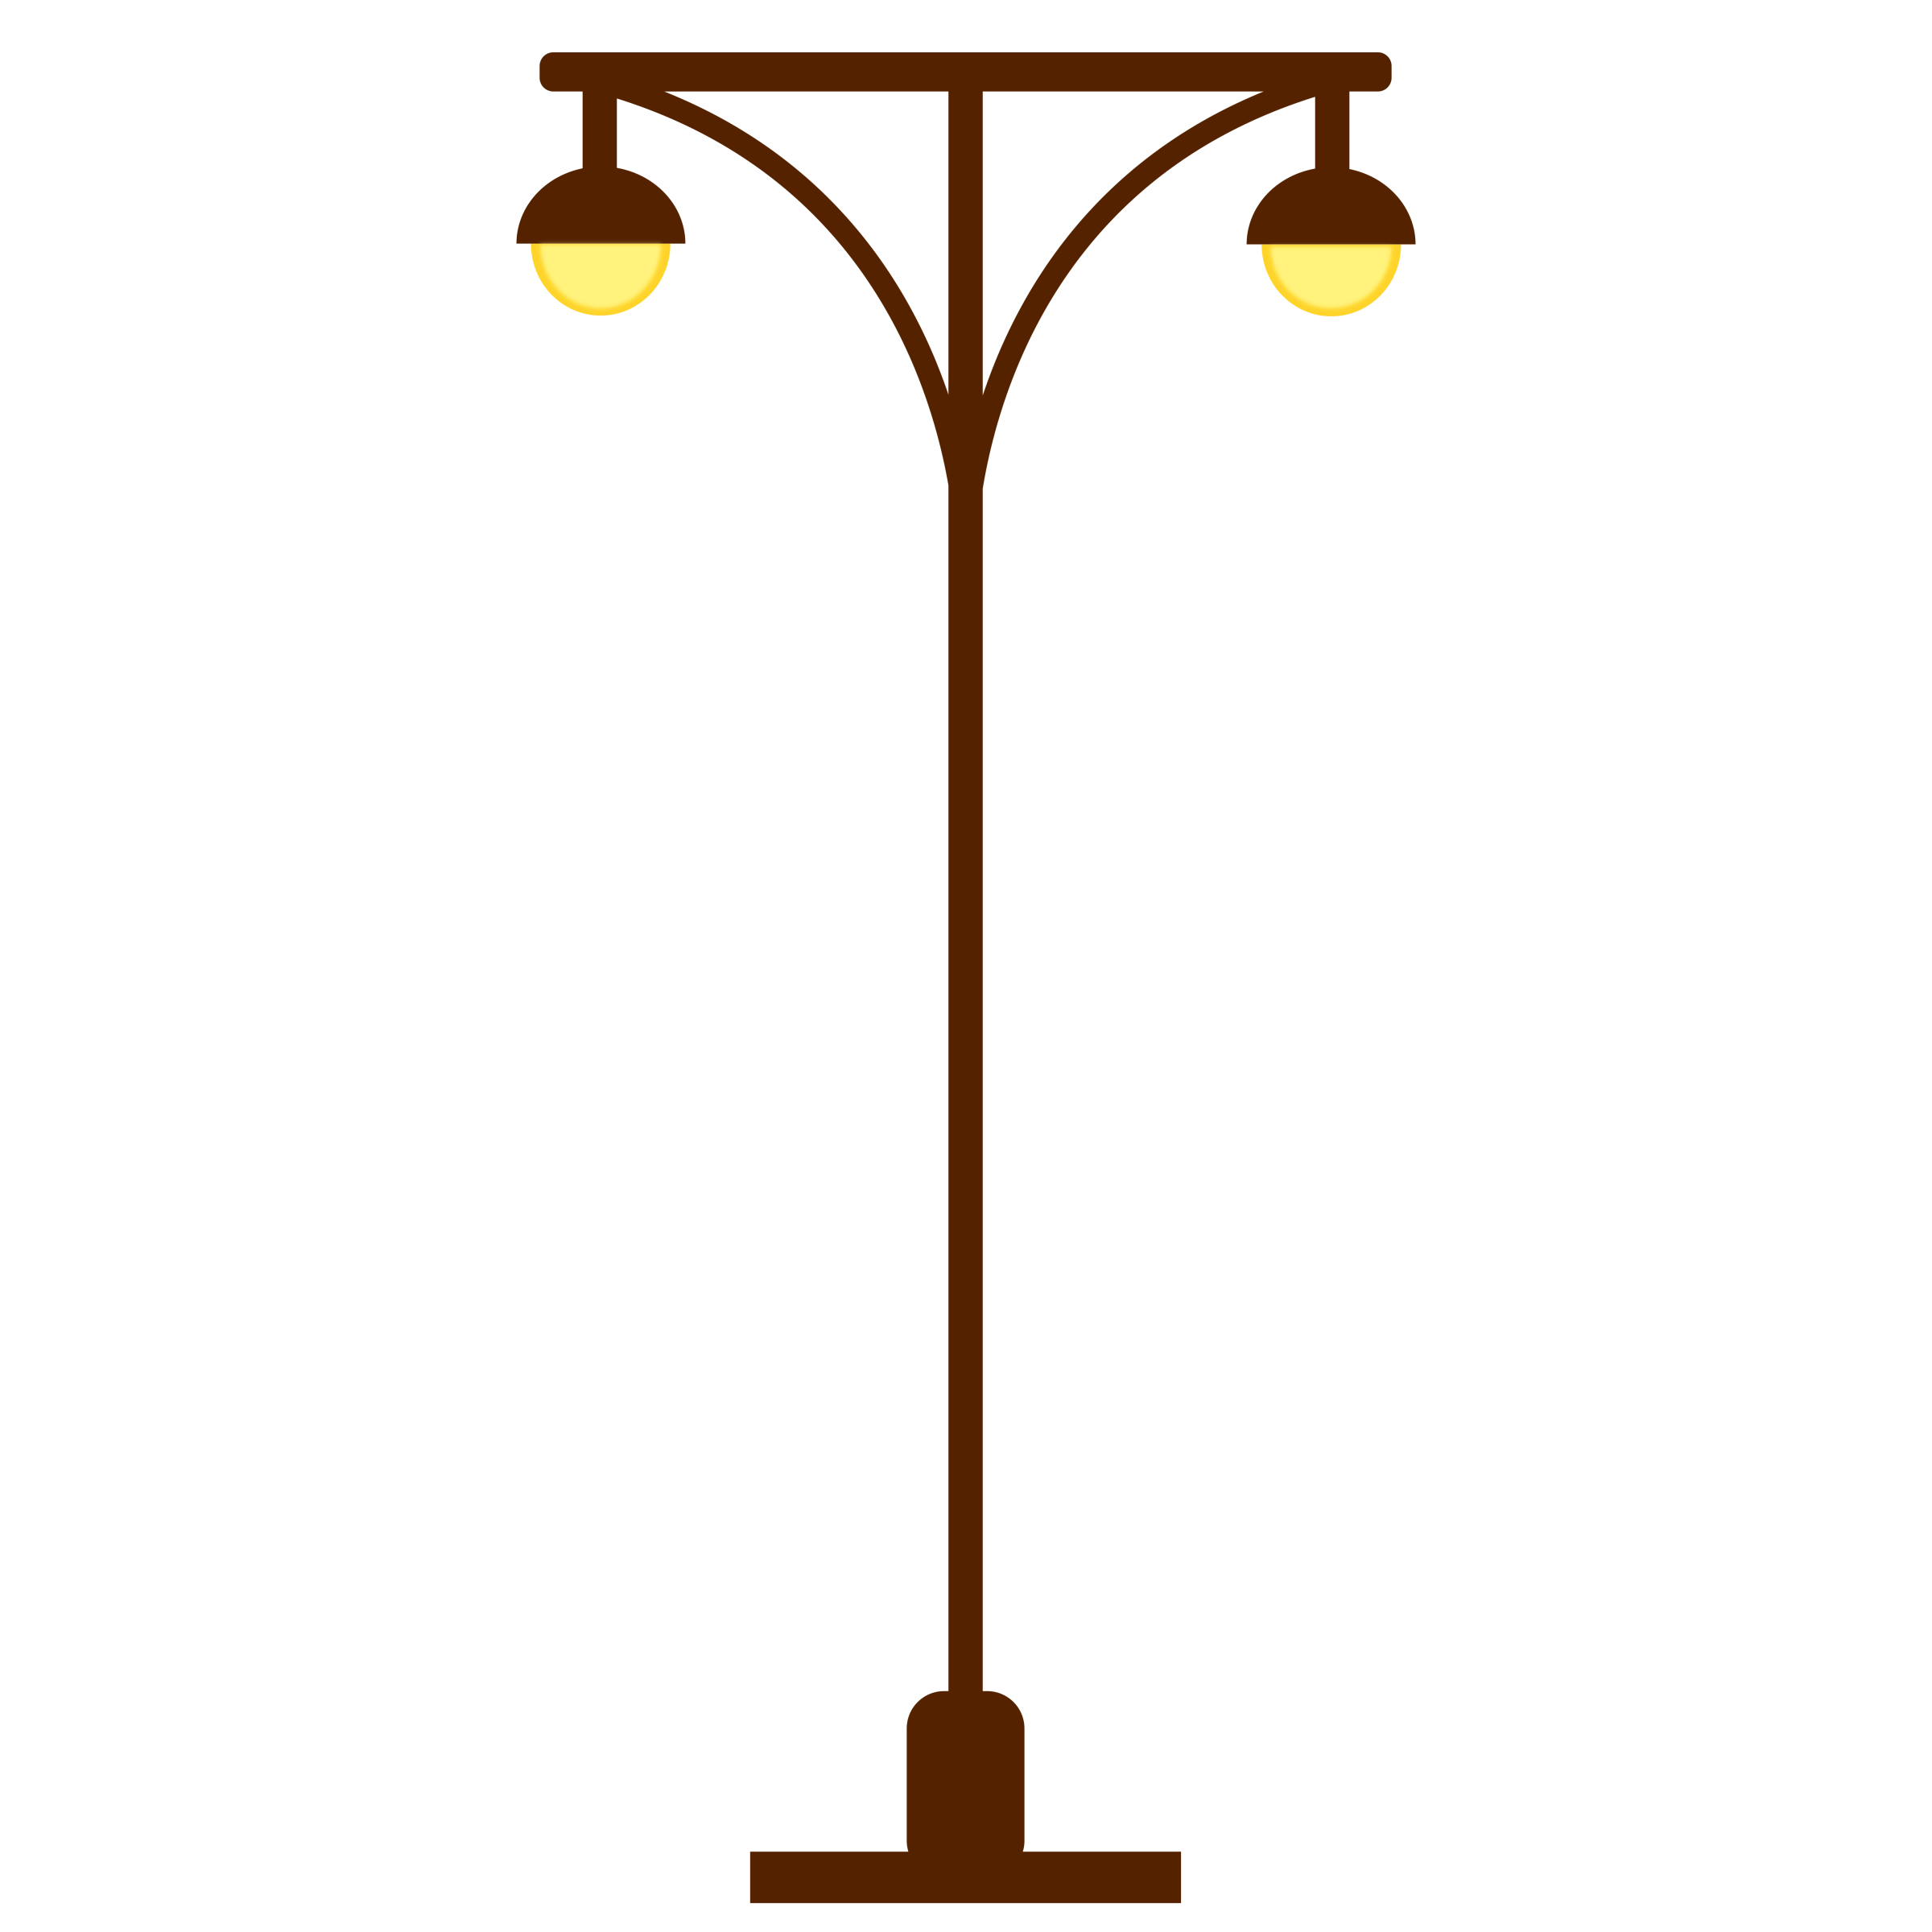 Lamp pole clipart - Clipground